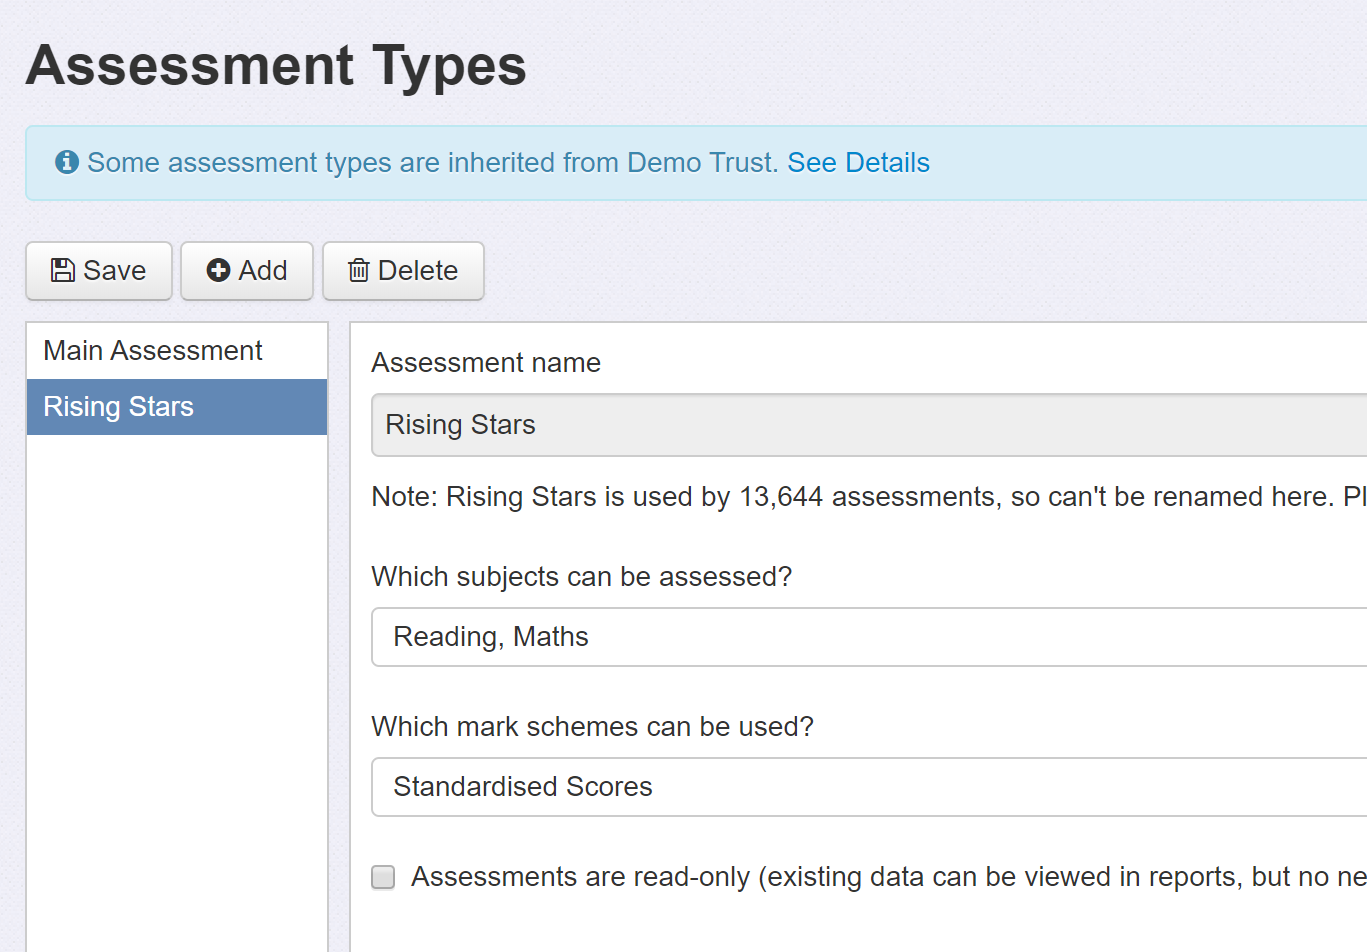 Assessment Types example